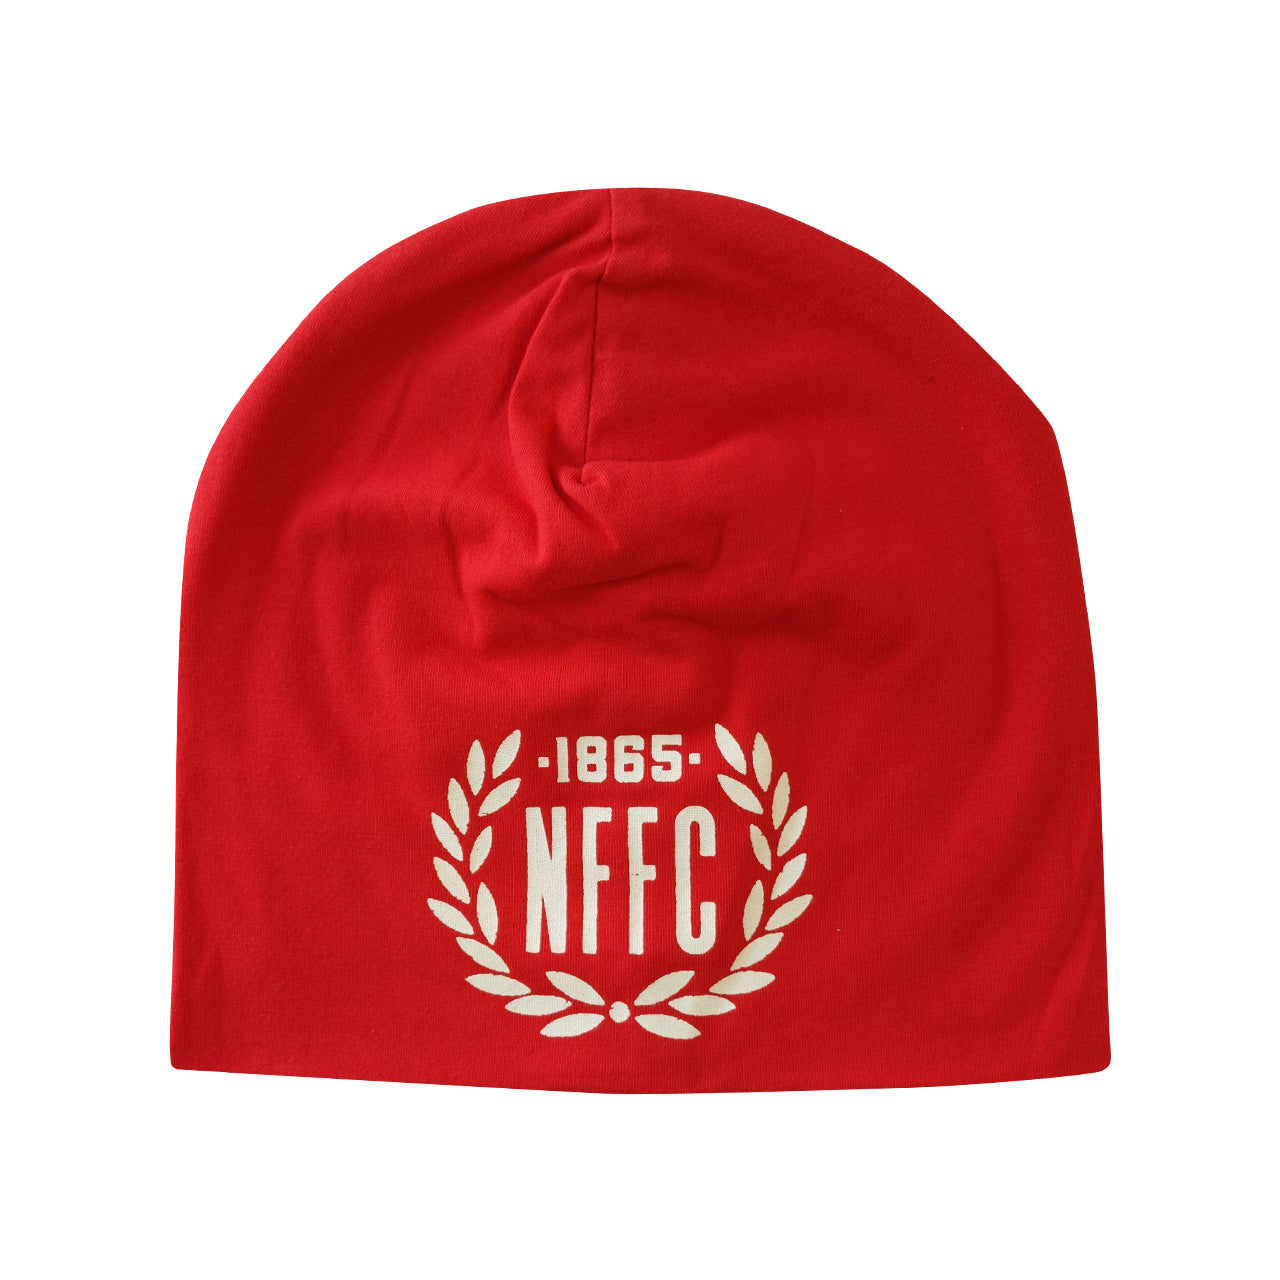 NFFC Adult Red Cotton Beanie - Nottingham Forest